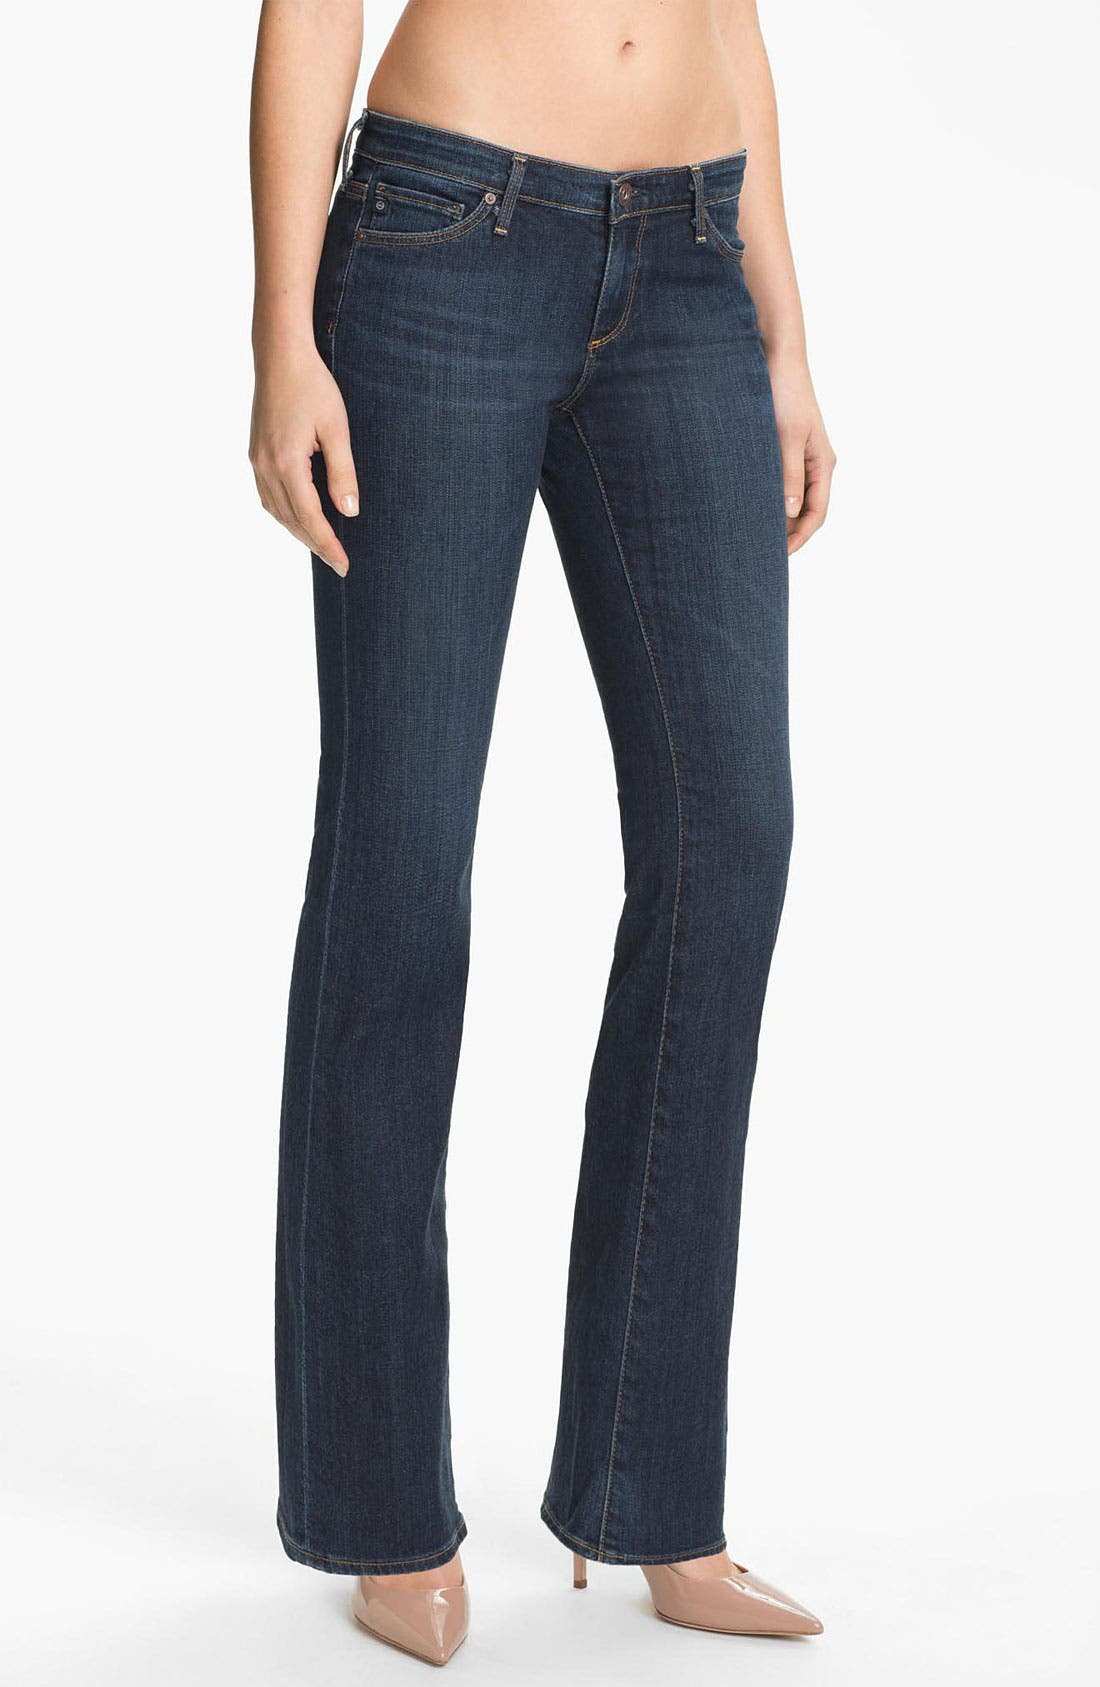 Alternate Image 1 Selected - AG Jeans 'Angelina' Bootcut Jeans (Blue Brush) (Petite)